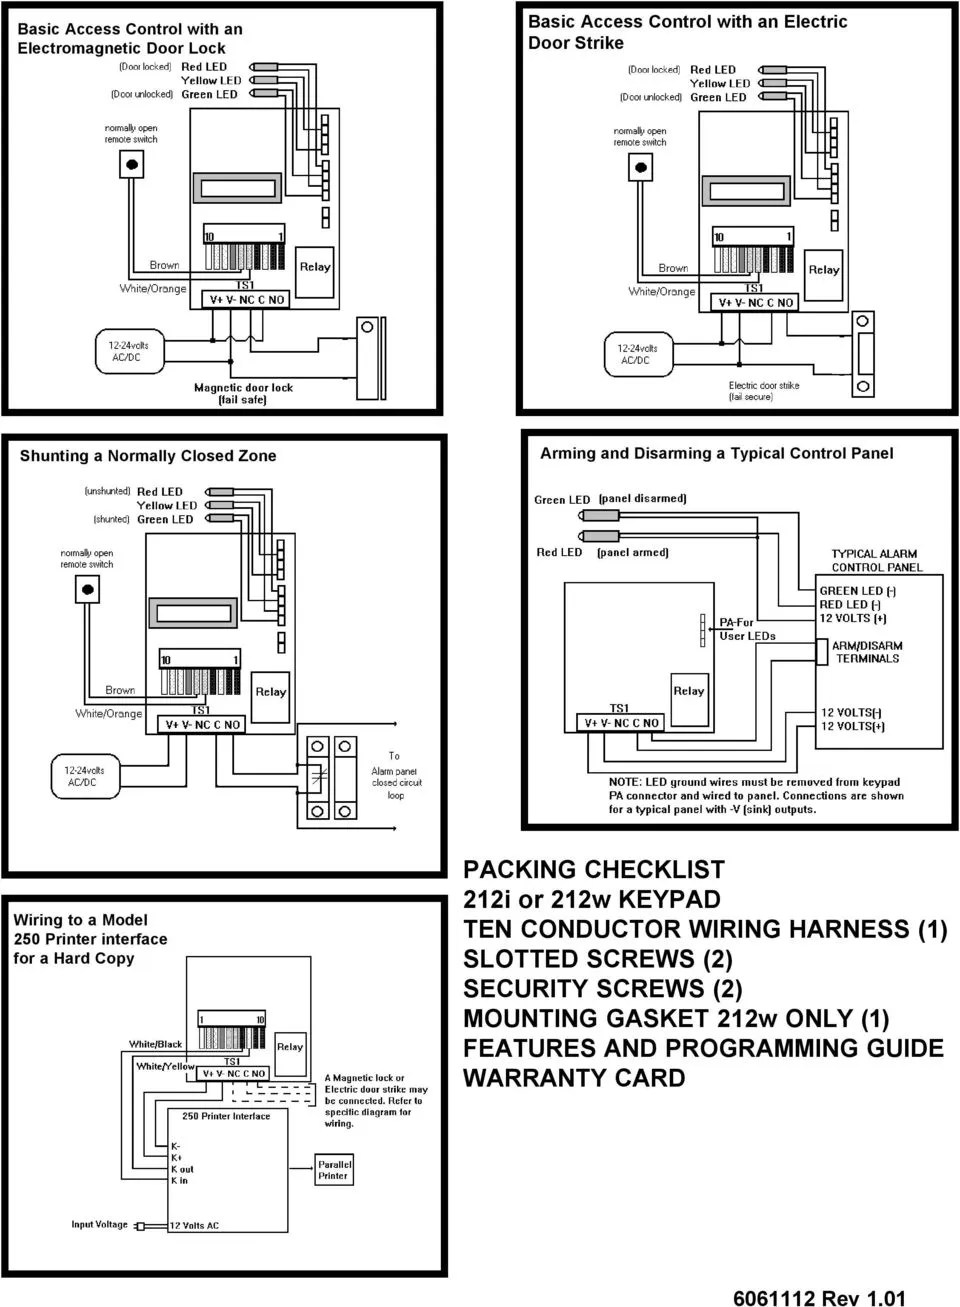 hight resolution of interface for a hard copy packing checklist 212i or 212w keypad ten conductor wiring harness